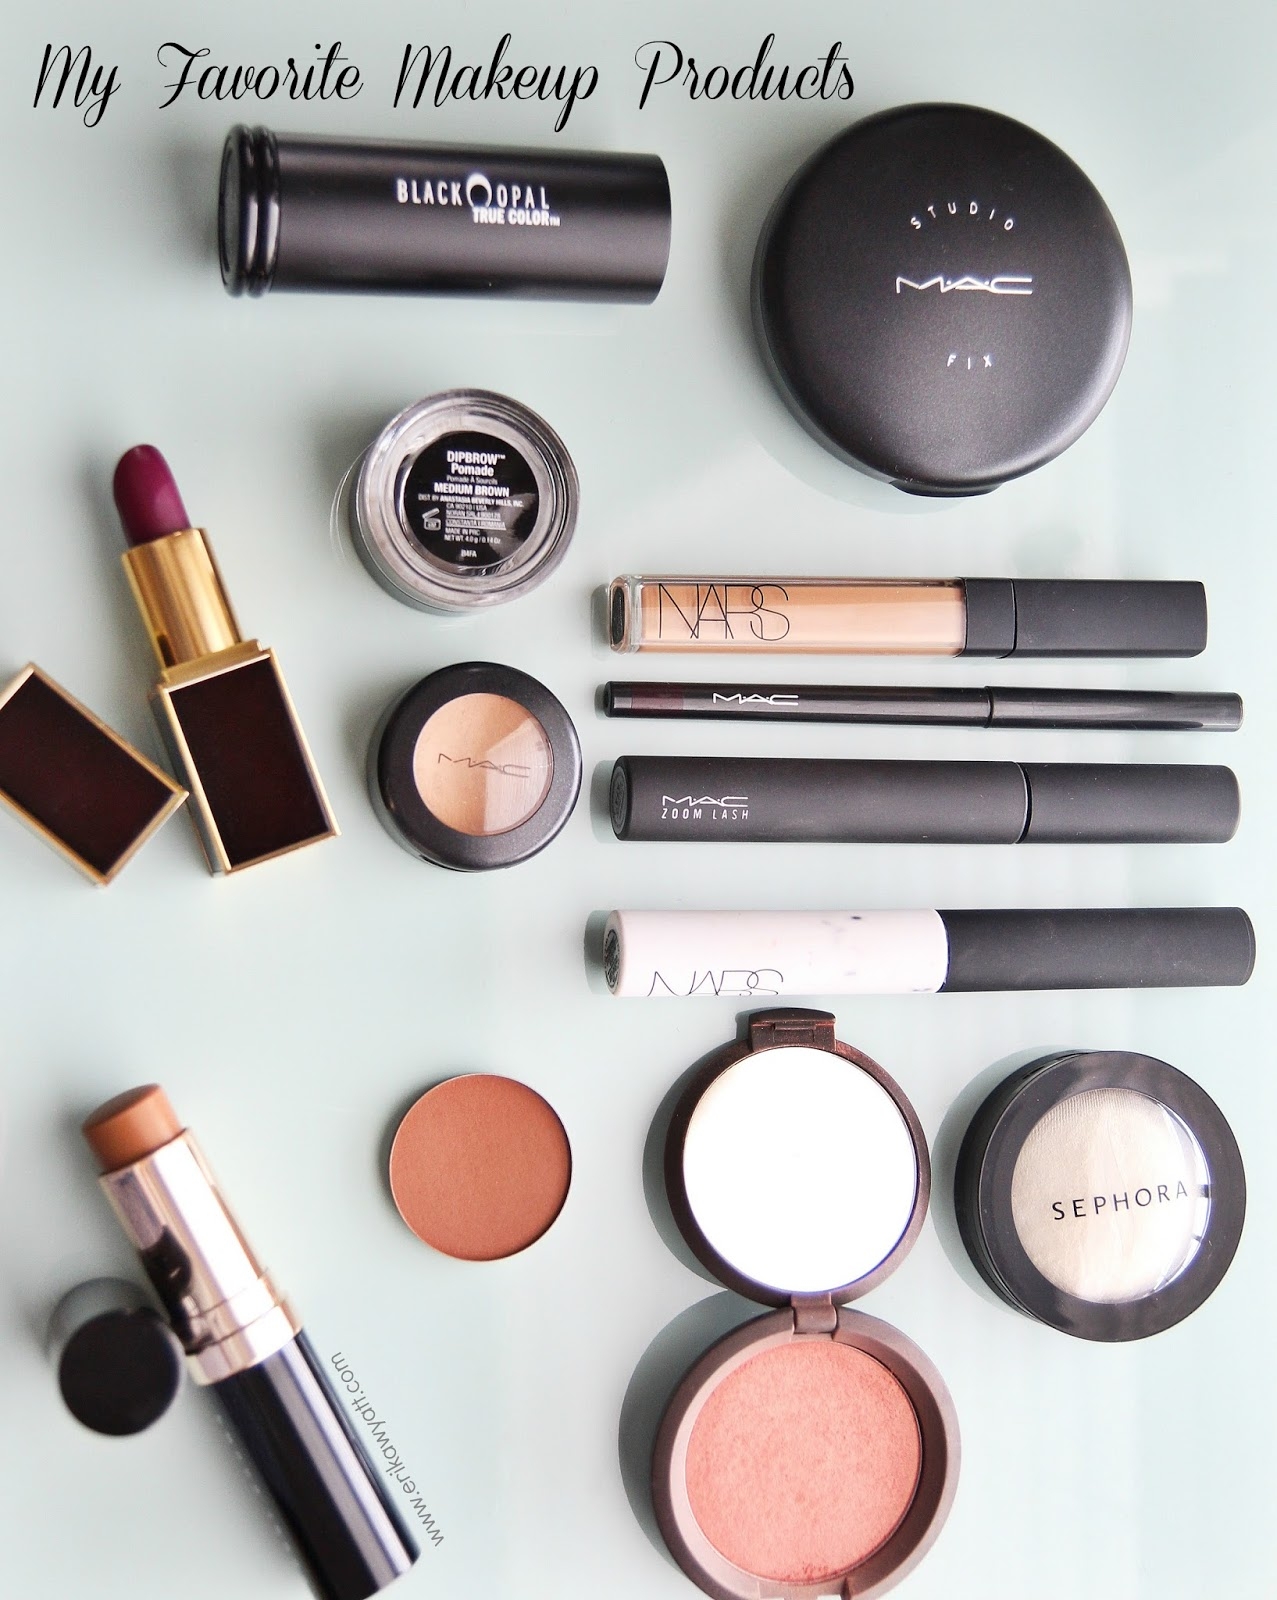 Makeup Essentials Must Haves From Makeup Artists Part 1: Itserikawyatt: Makeup Essentials #itserikawyatt